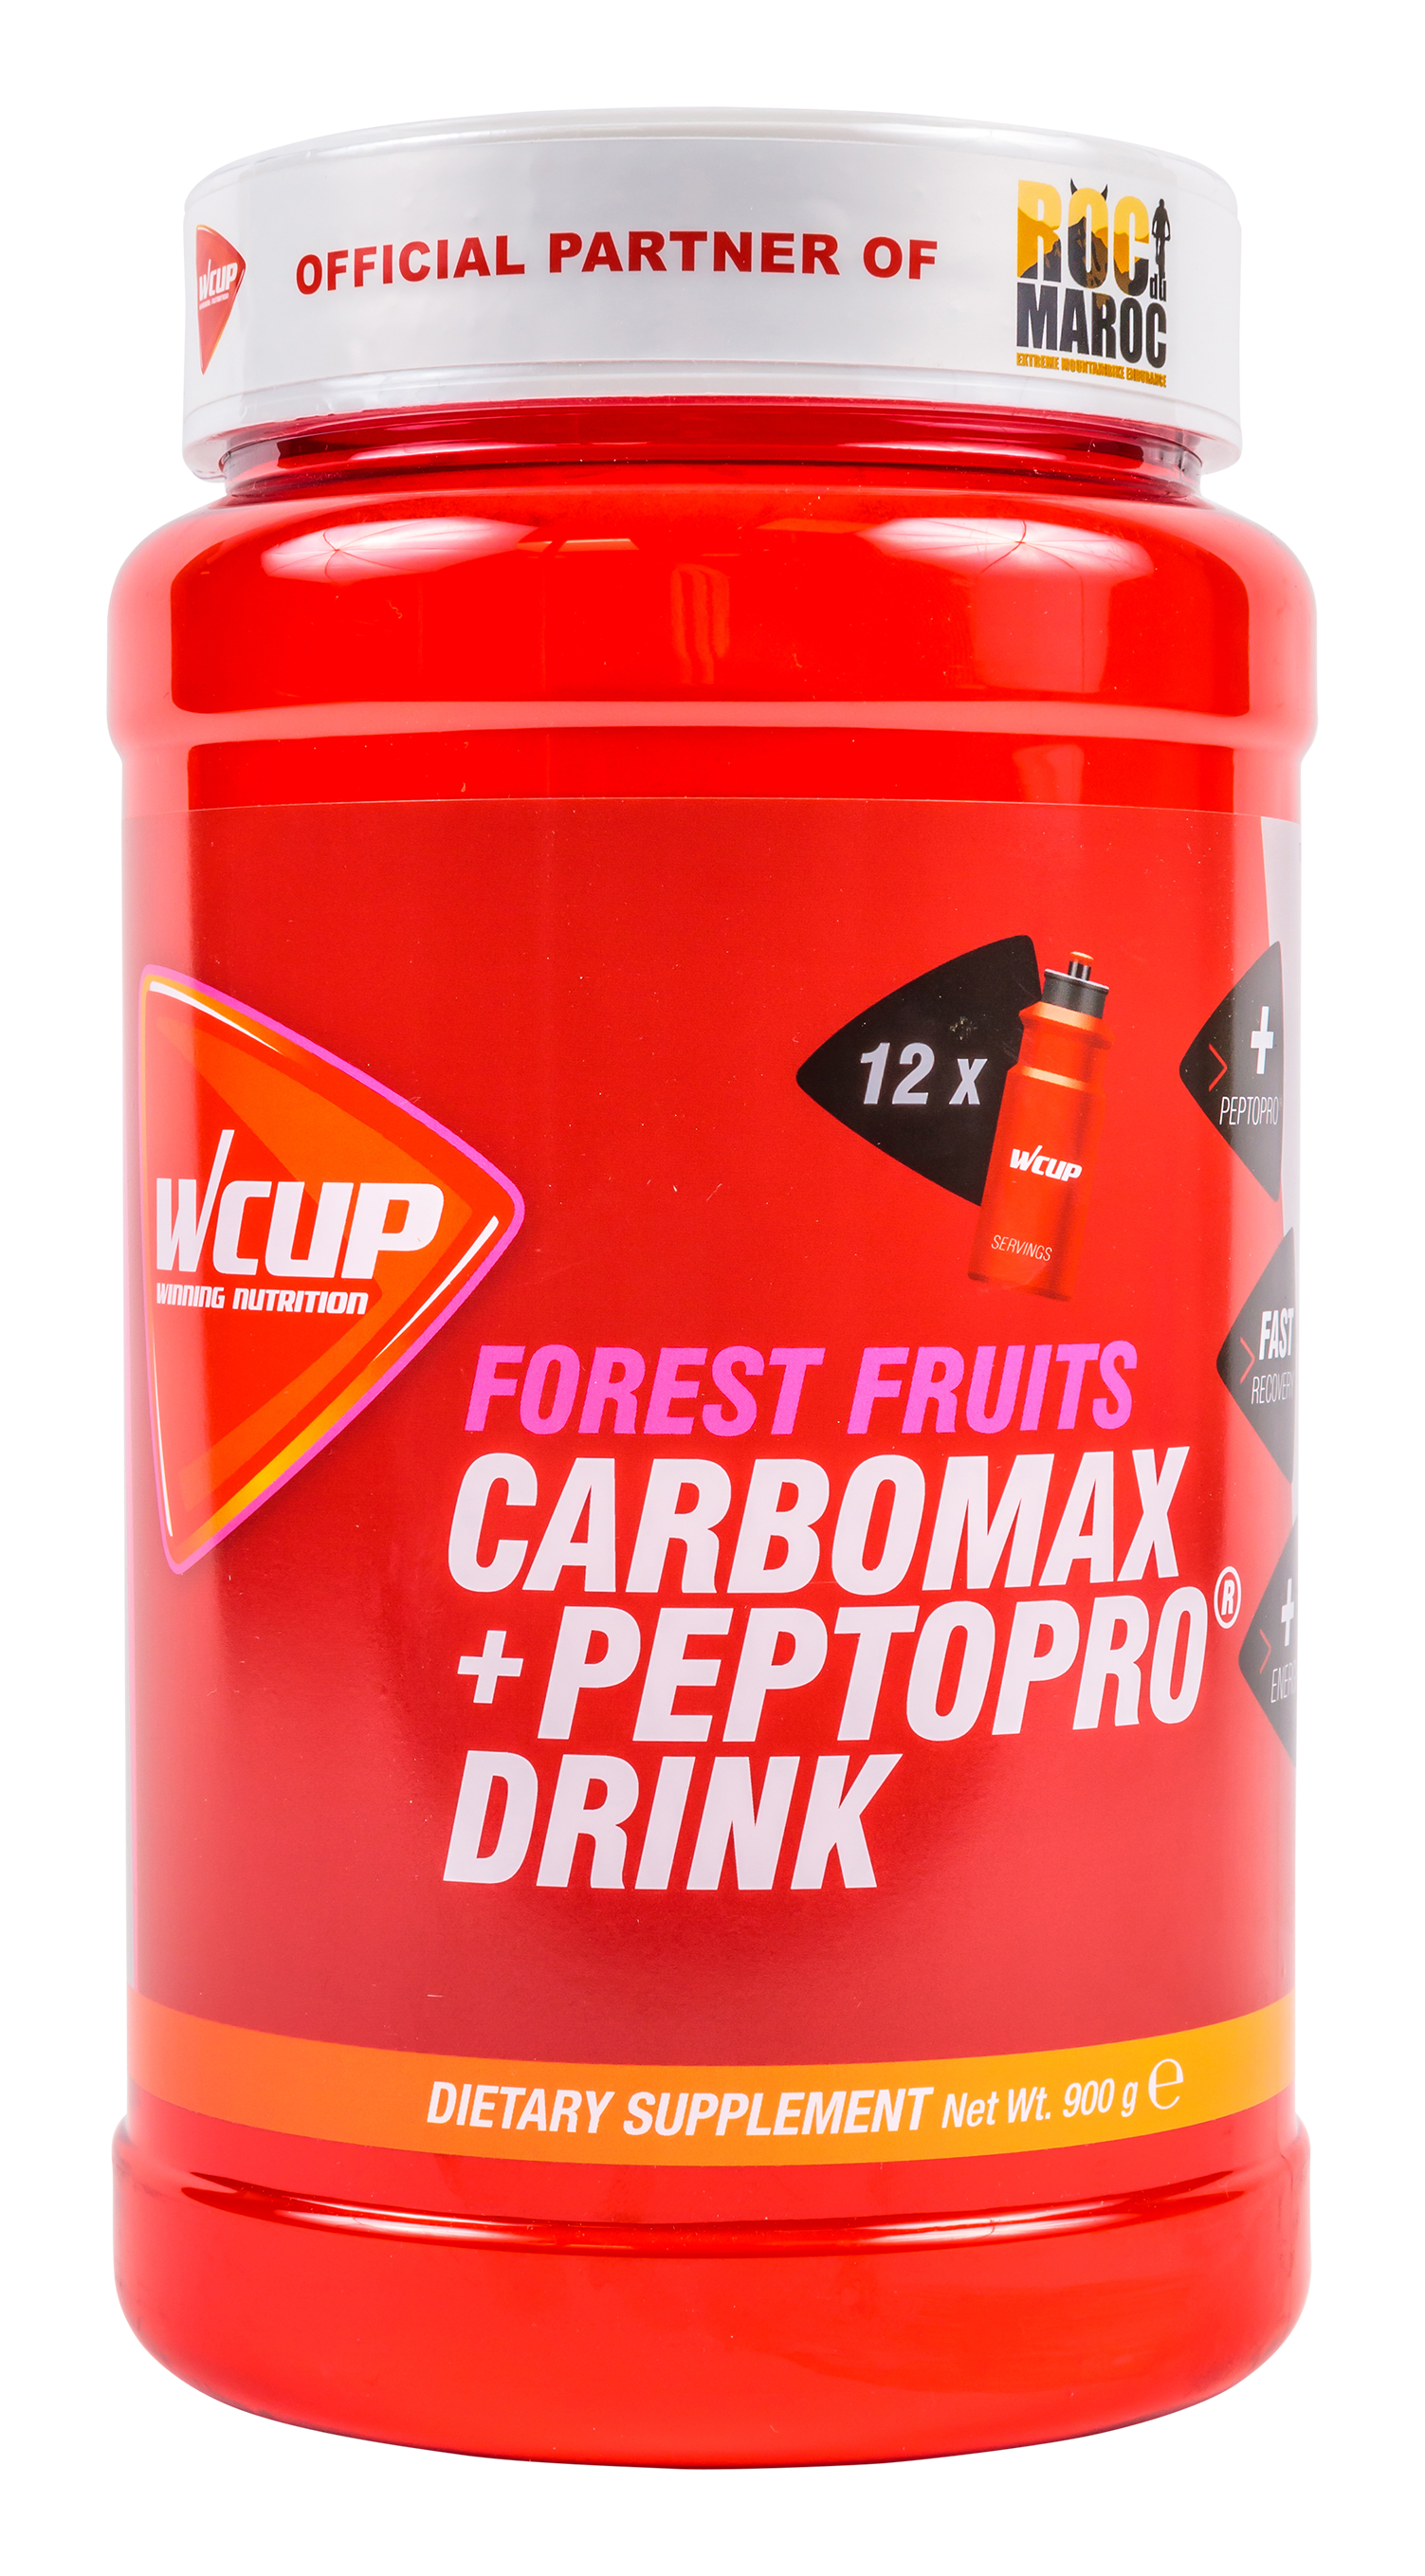 Carbomax + PeptoPro Drink Forest Fruits